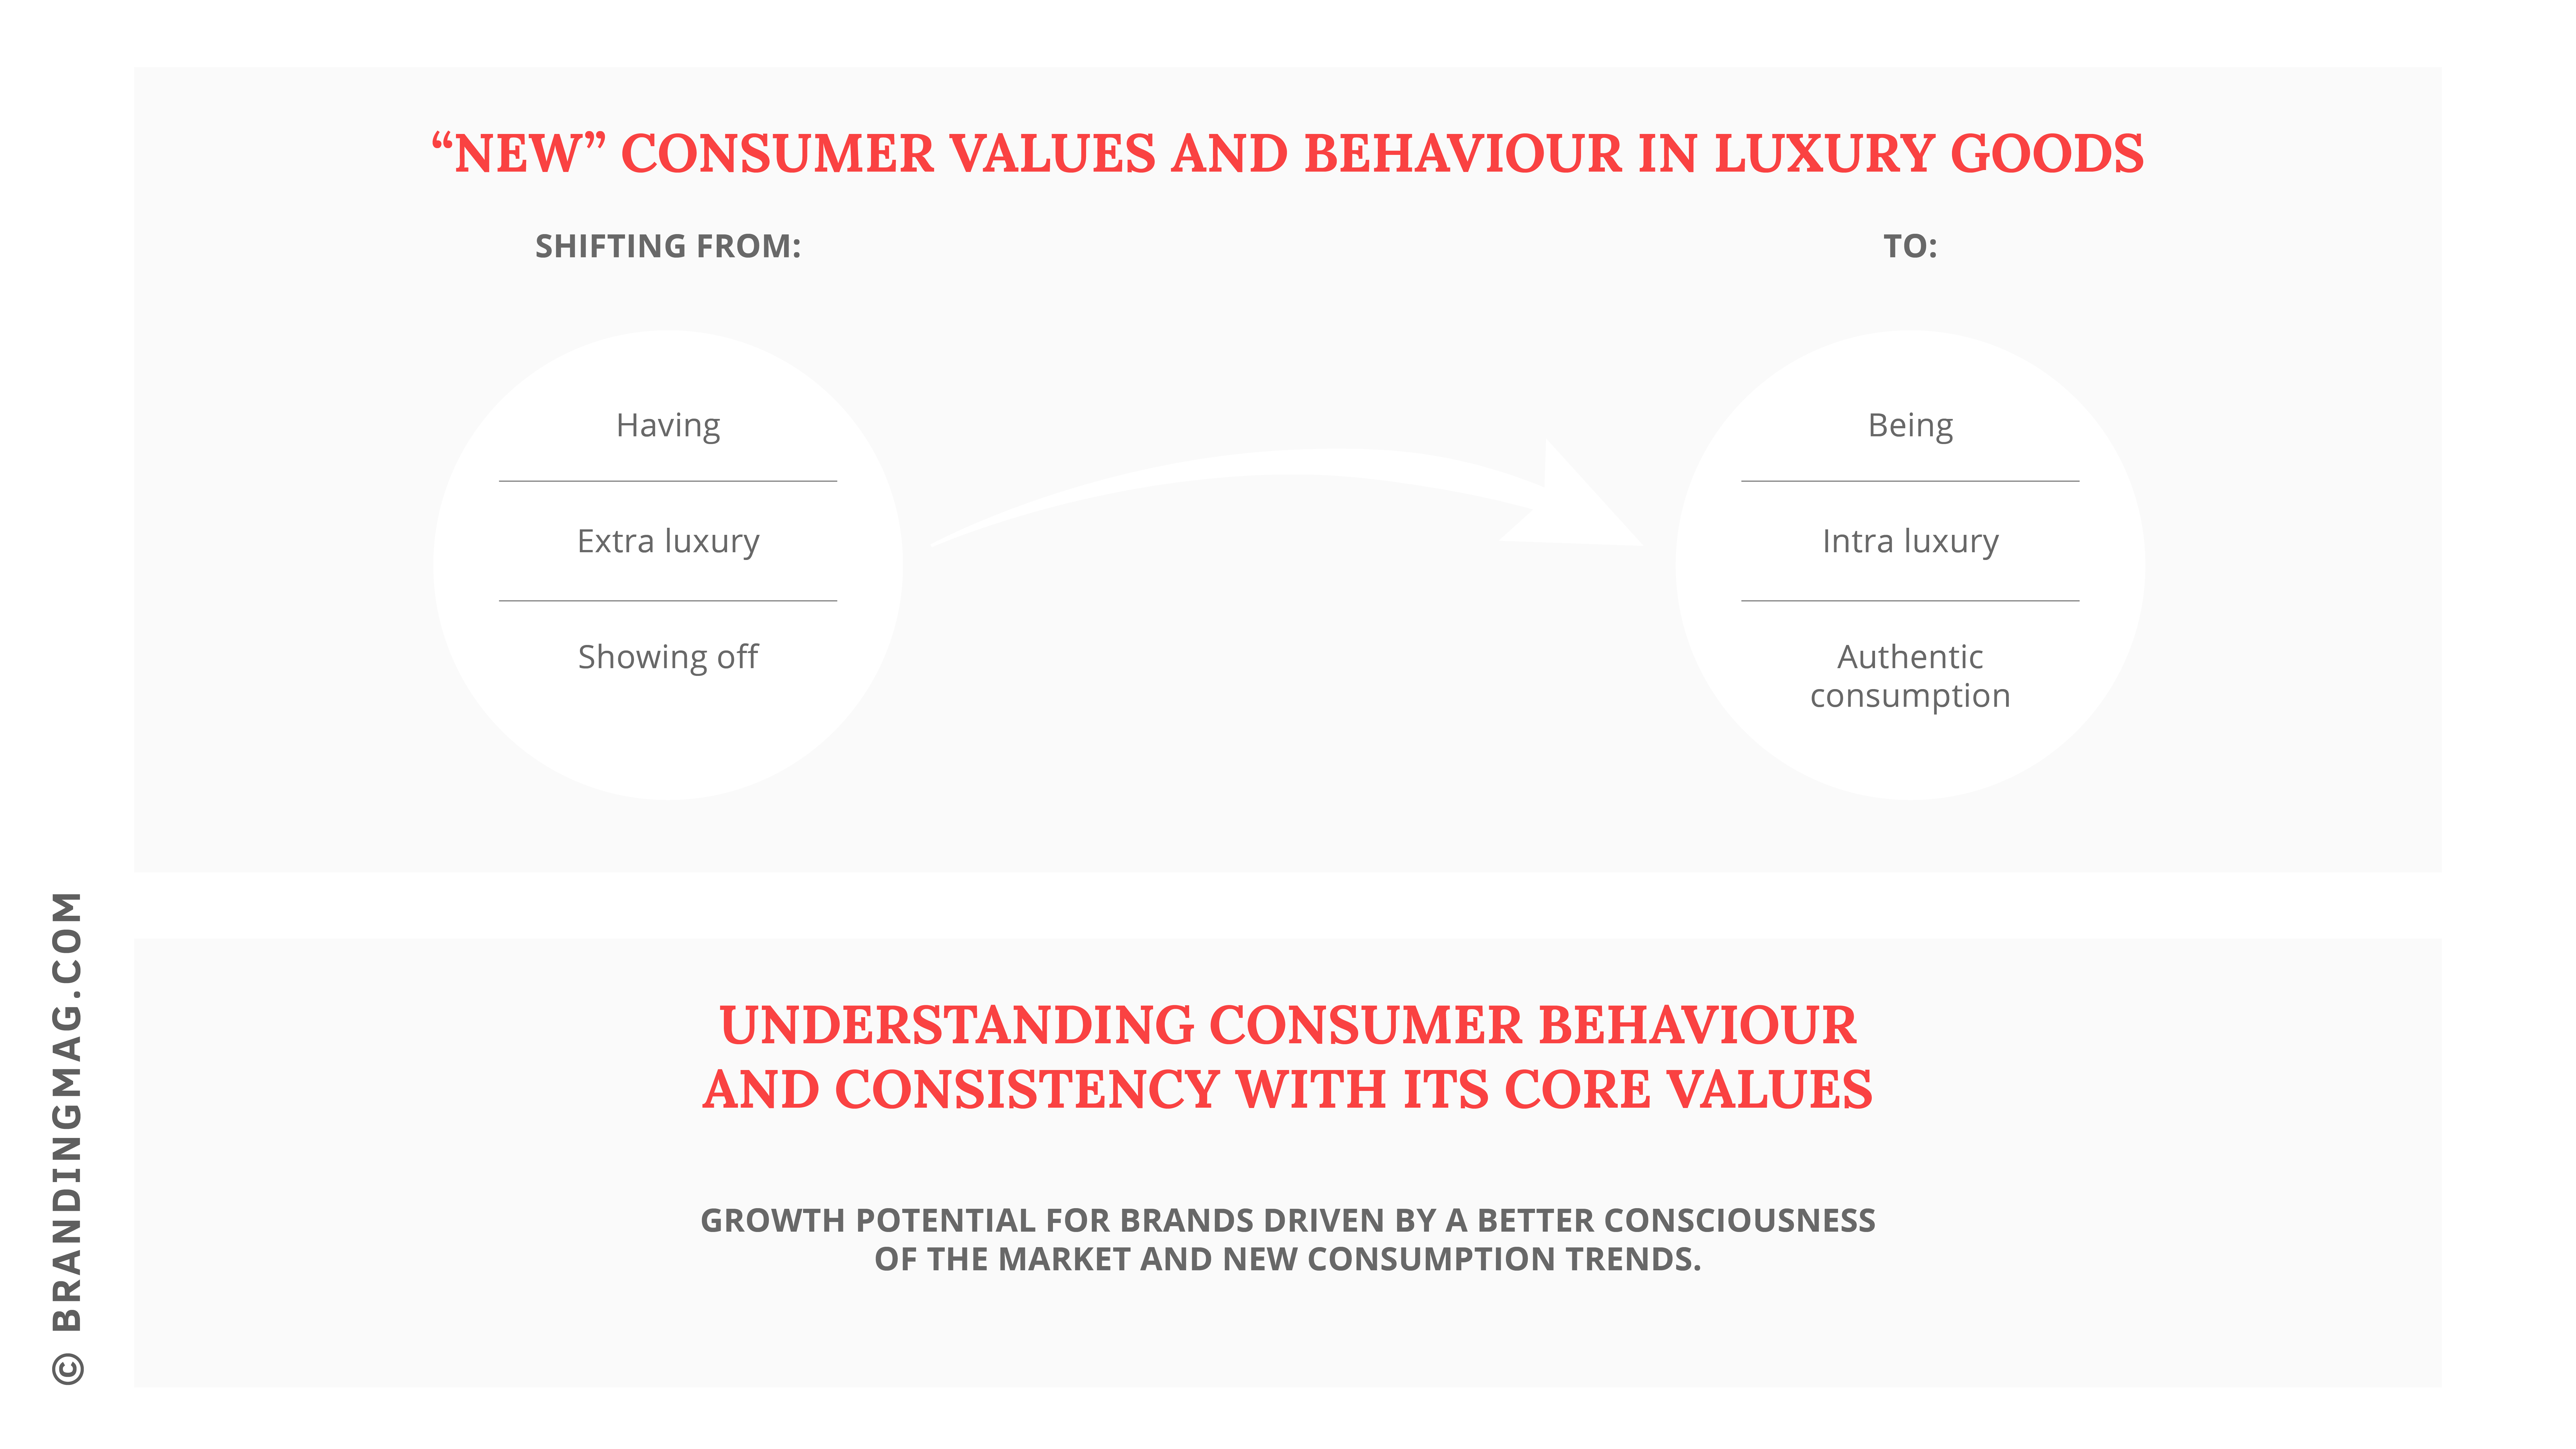 Brand Equity: A Pillar for Luxury Competitive Advantage